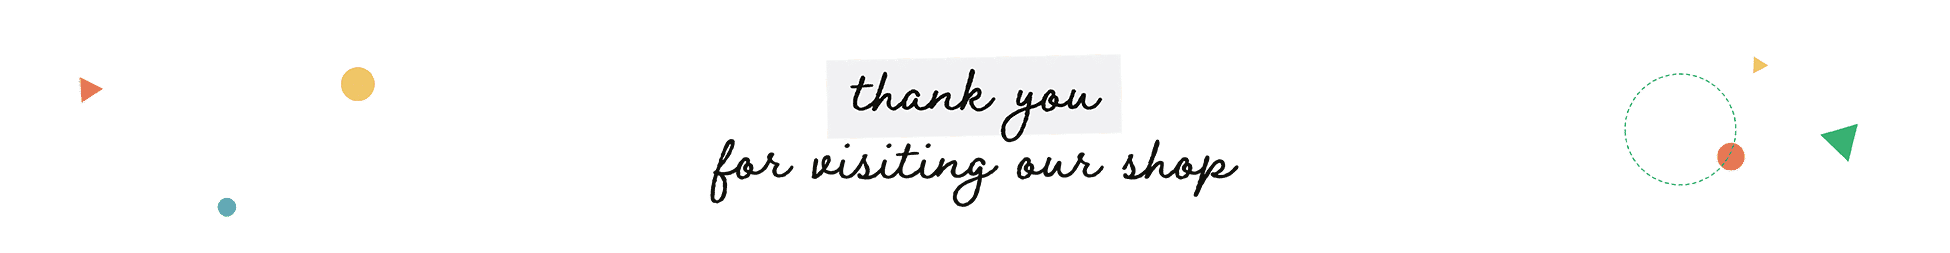 thank you for visiting collette and co bottom banner bottom banner copy